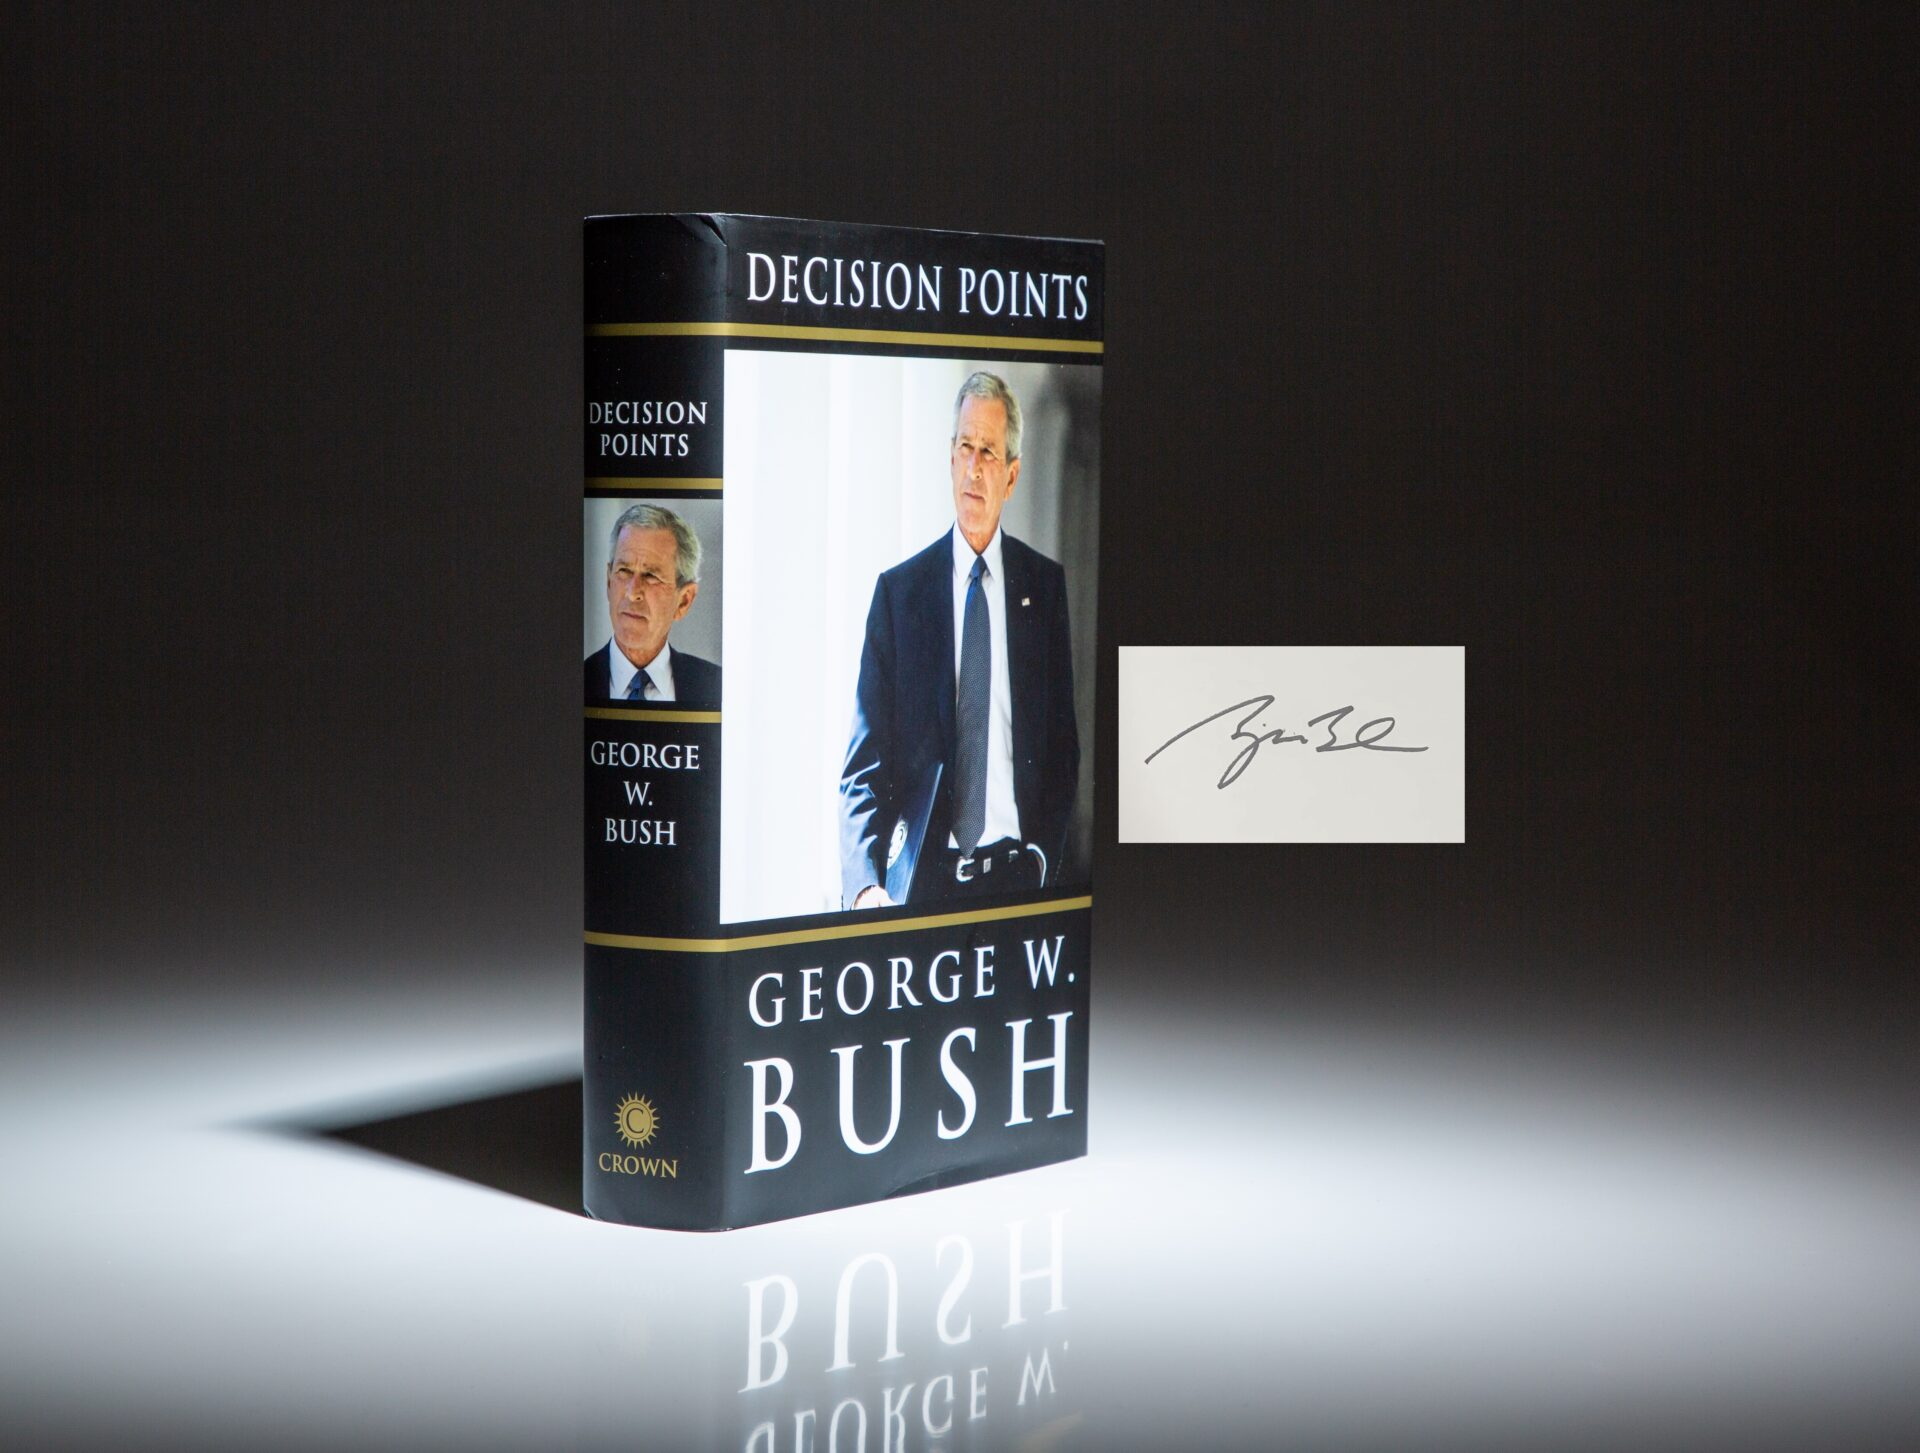 Signed first edition, first printing of Decision Points by President George W. Bush.